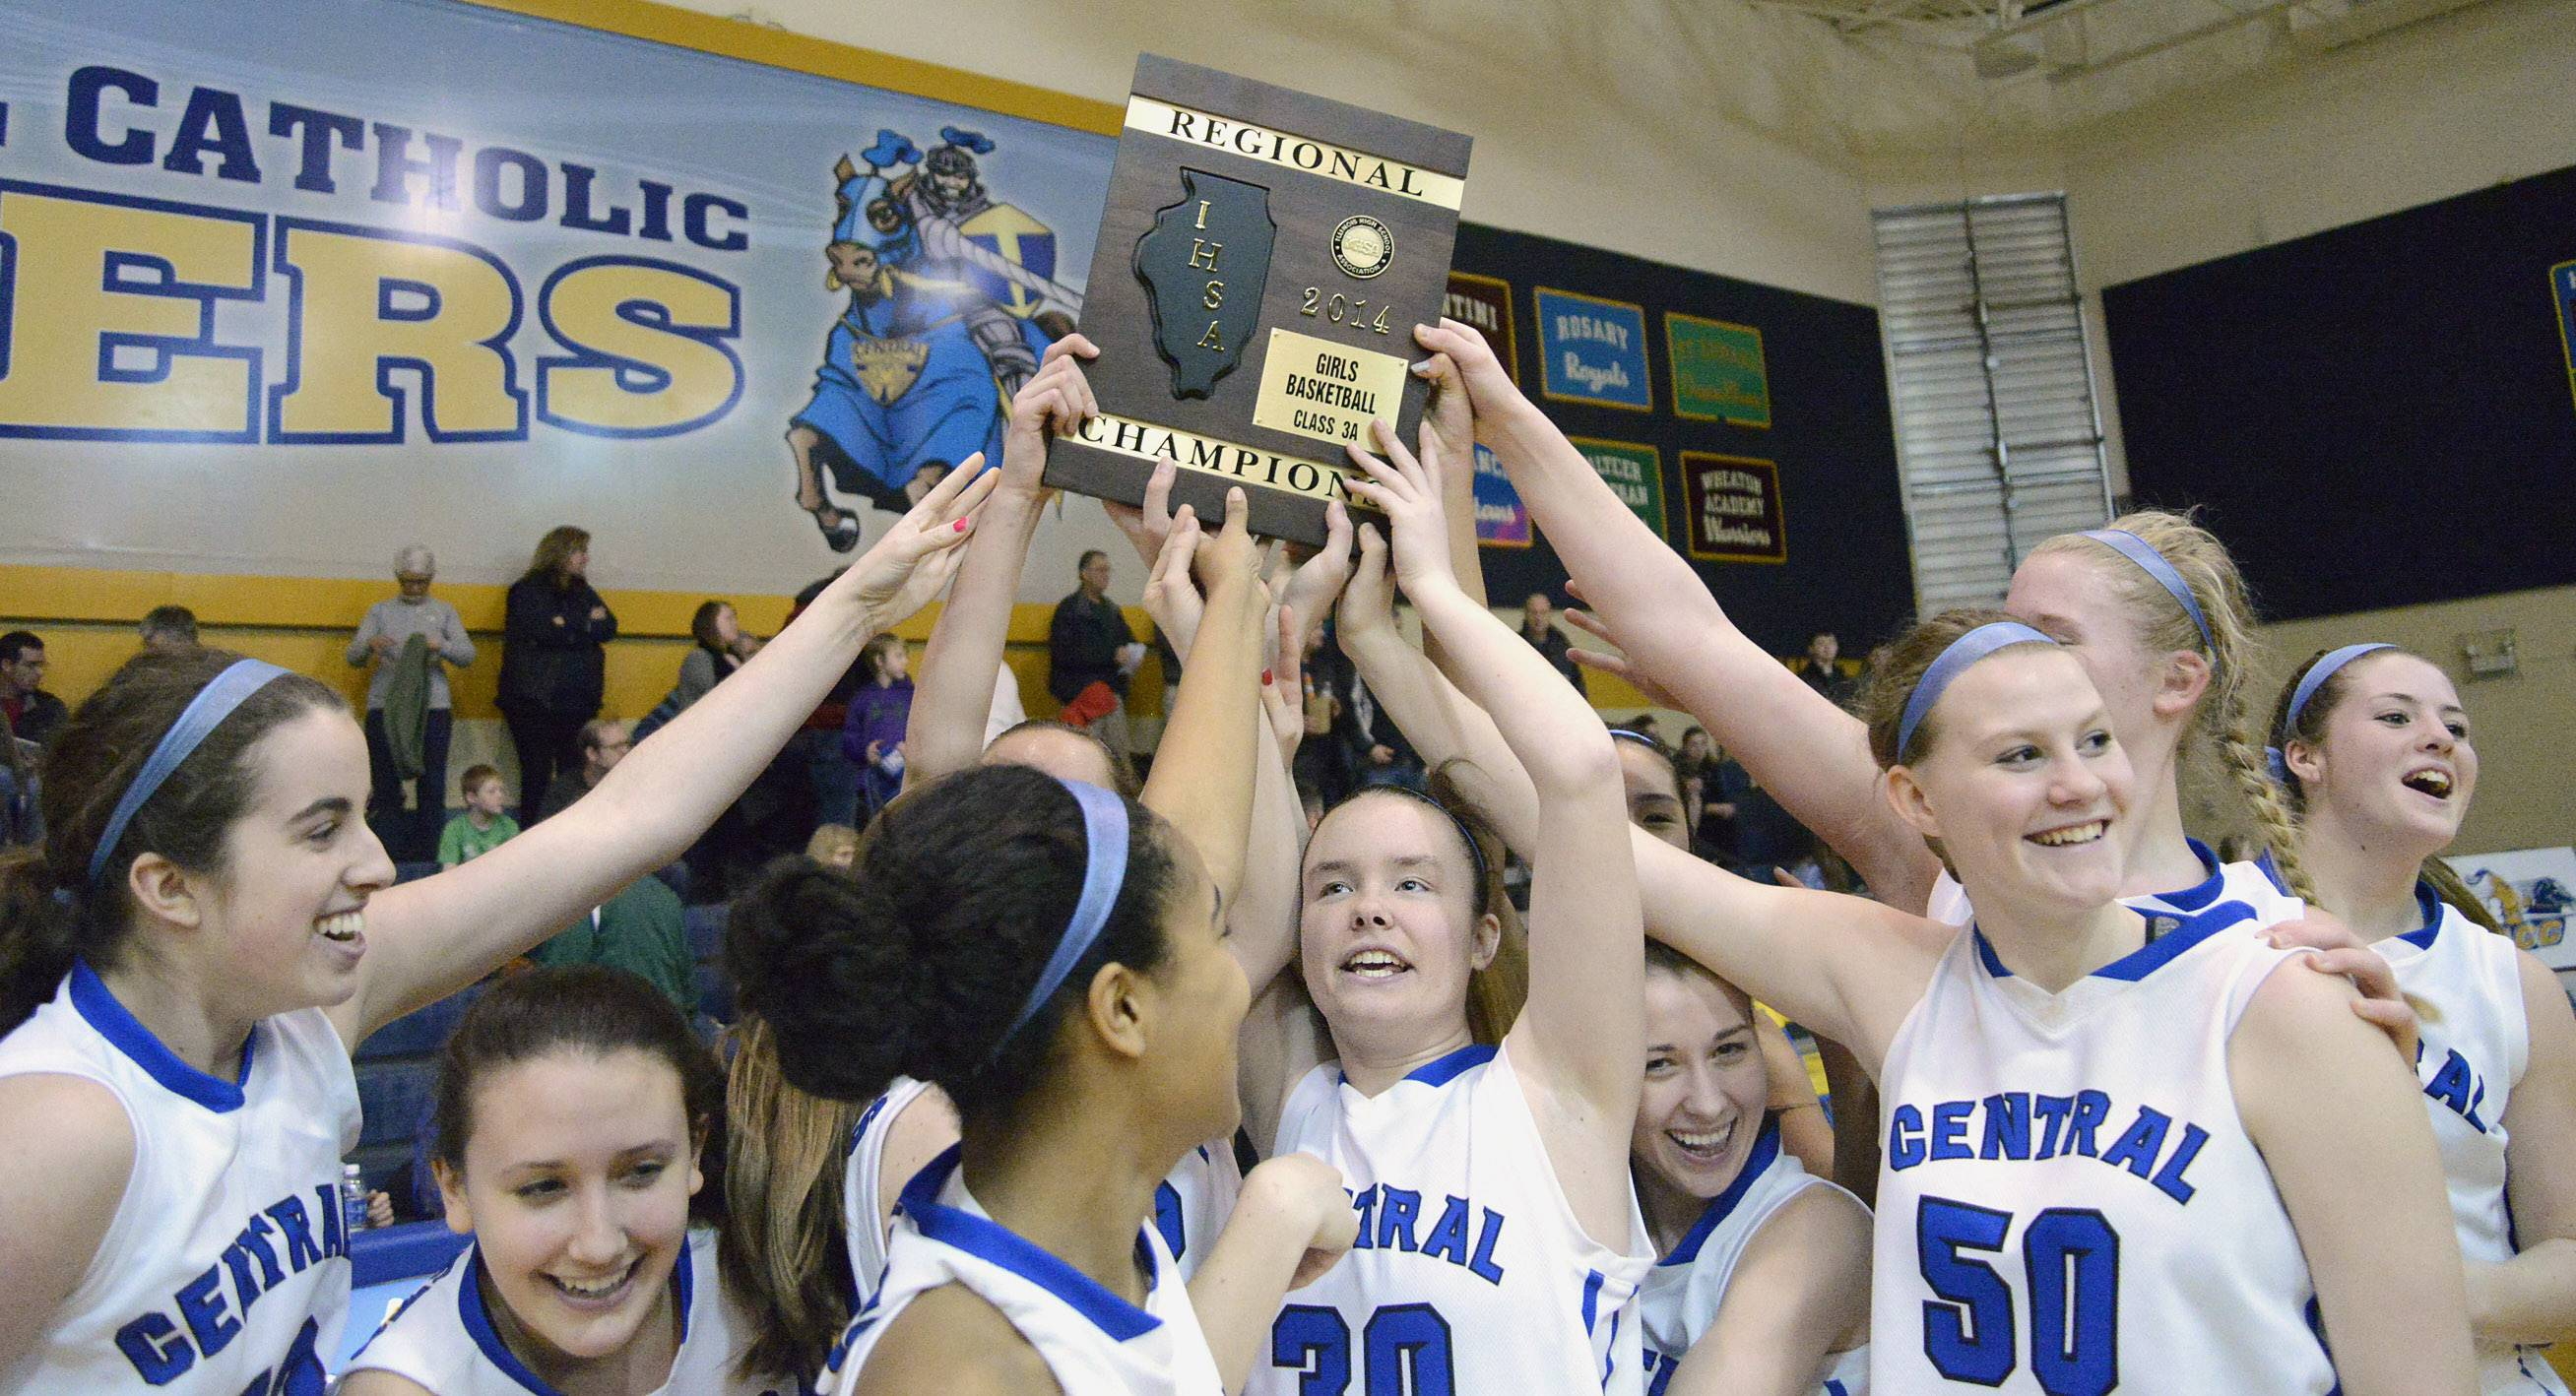 Burlington Central hoists up the Class 3A regional championship plaque after their win over St. Edward on Saturday, February 22. Cassandra Ciganek (30) helps hold up the plaque from the center.